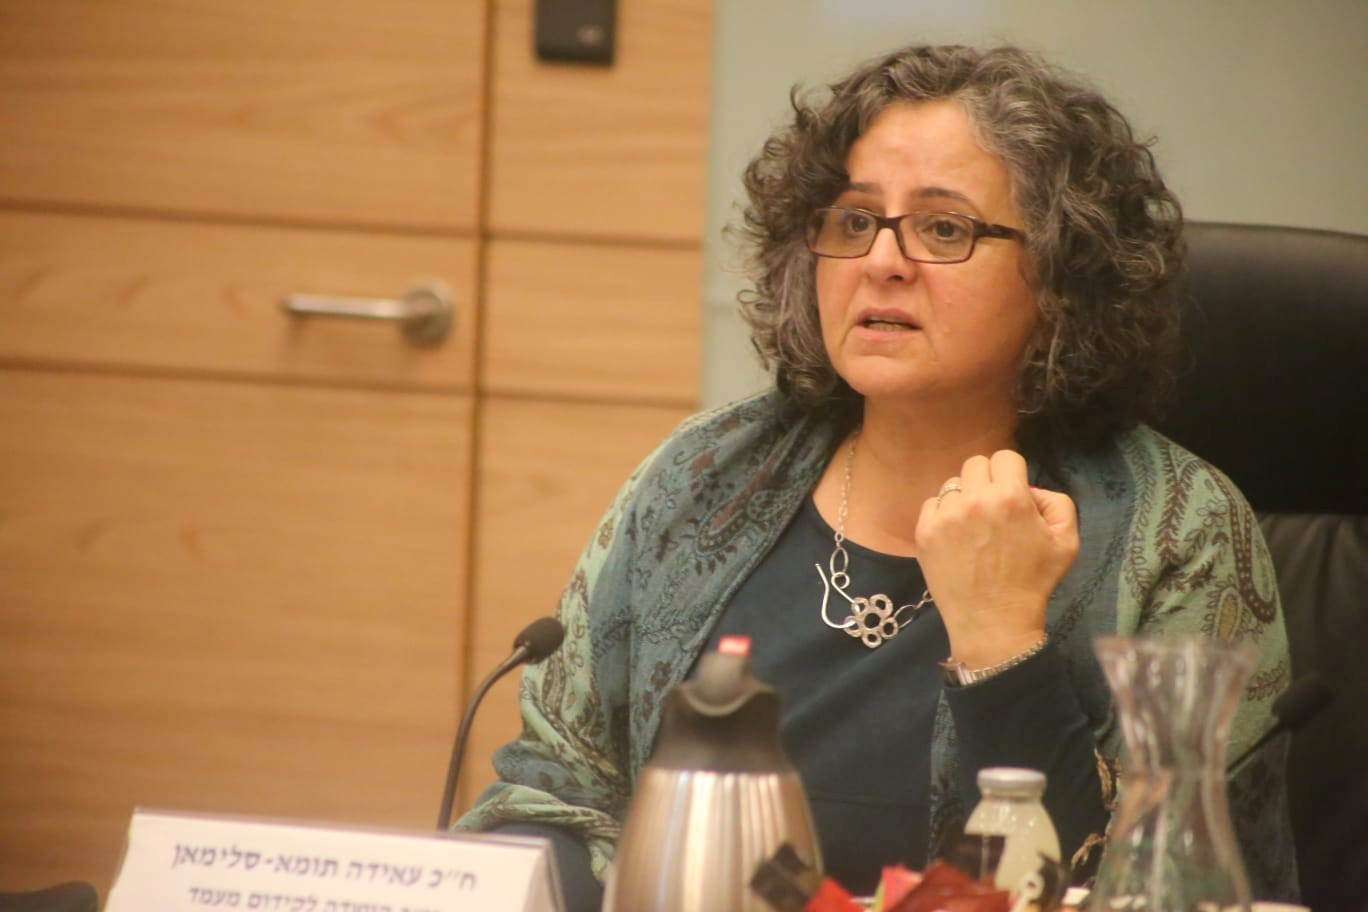 Hadash MK Aida Touma-Sliman, former head the Knesset's Committee on the Status of Women and Gender Equality, will now chair the Special Committee for Labor and Welfare.